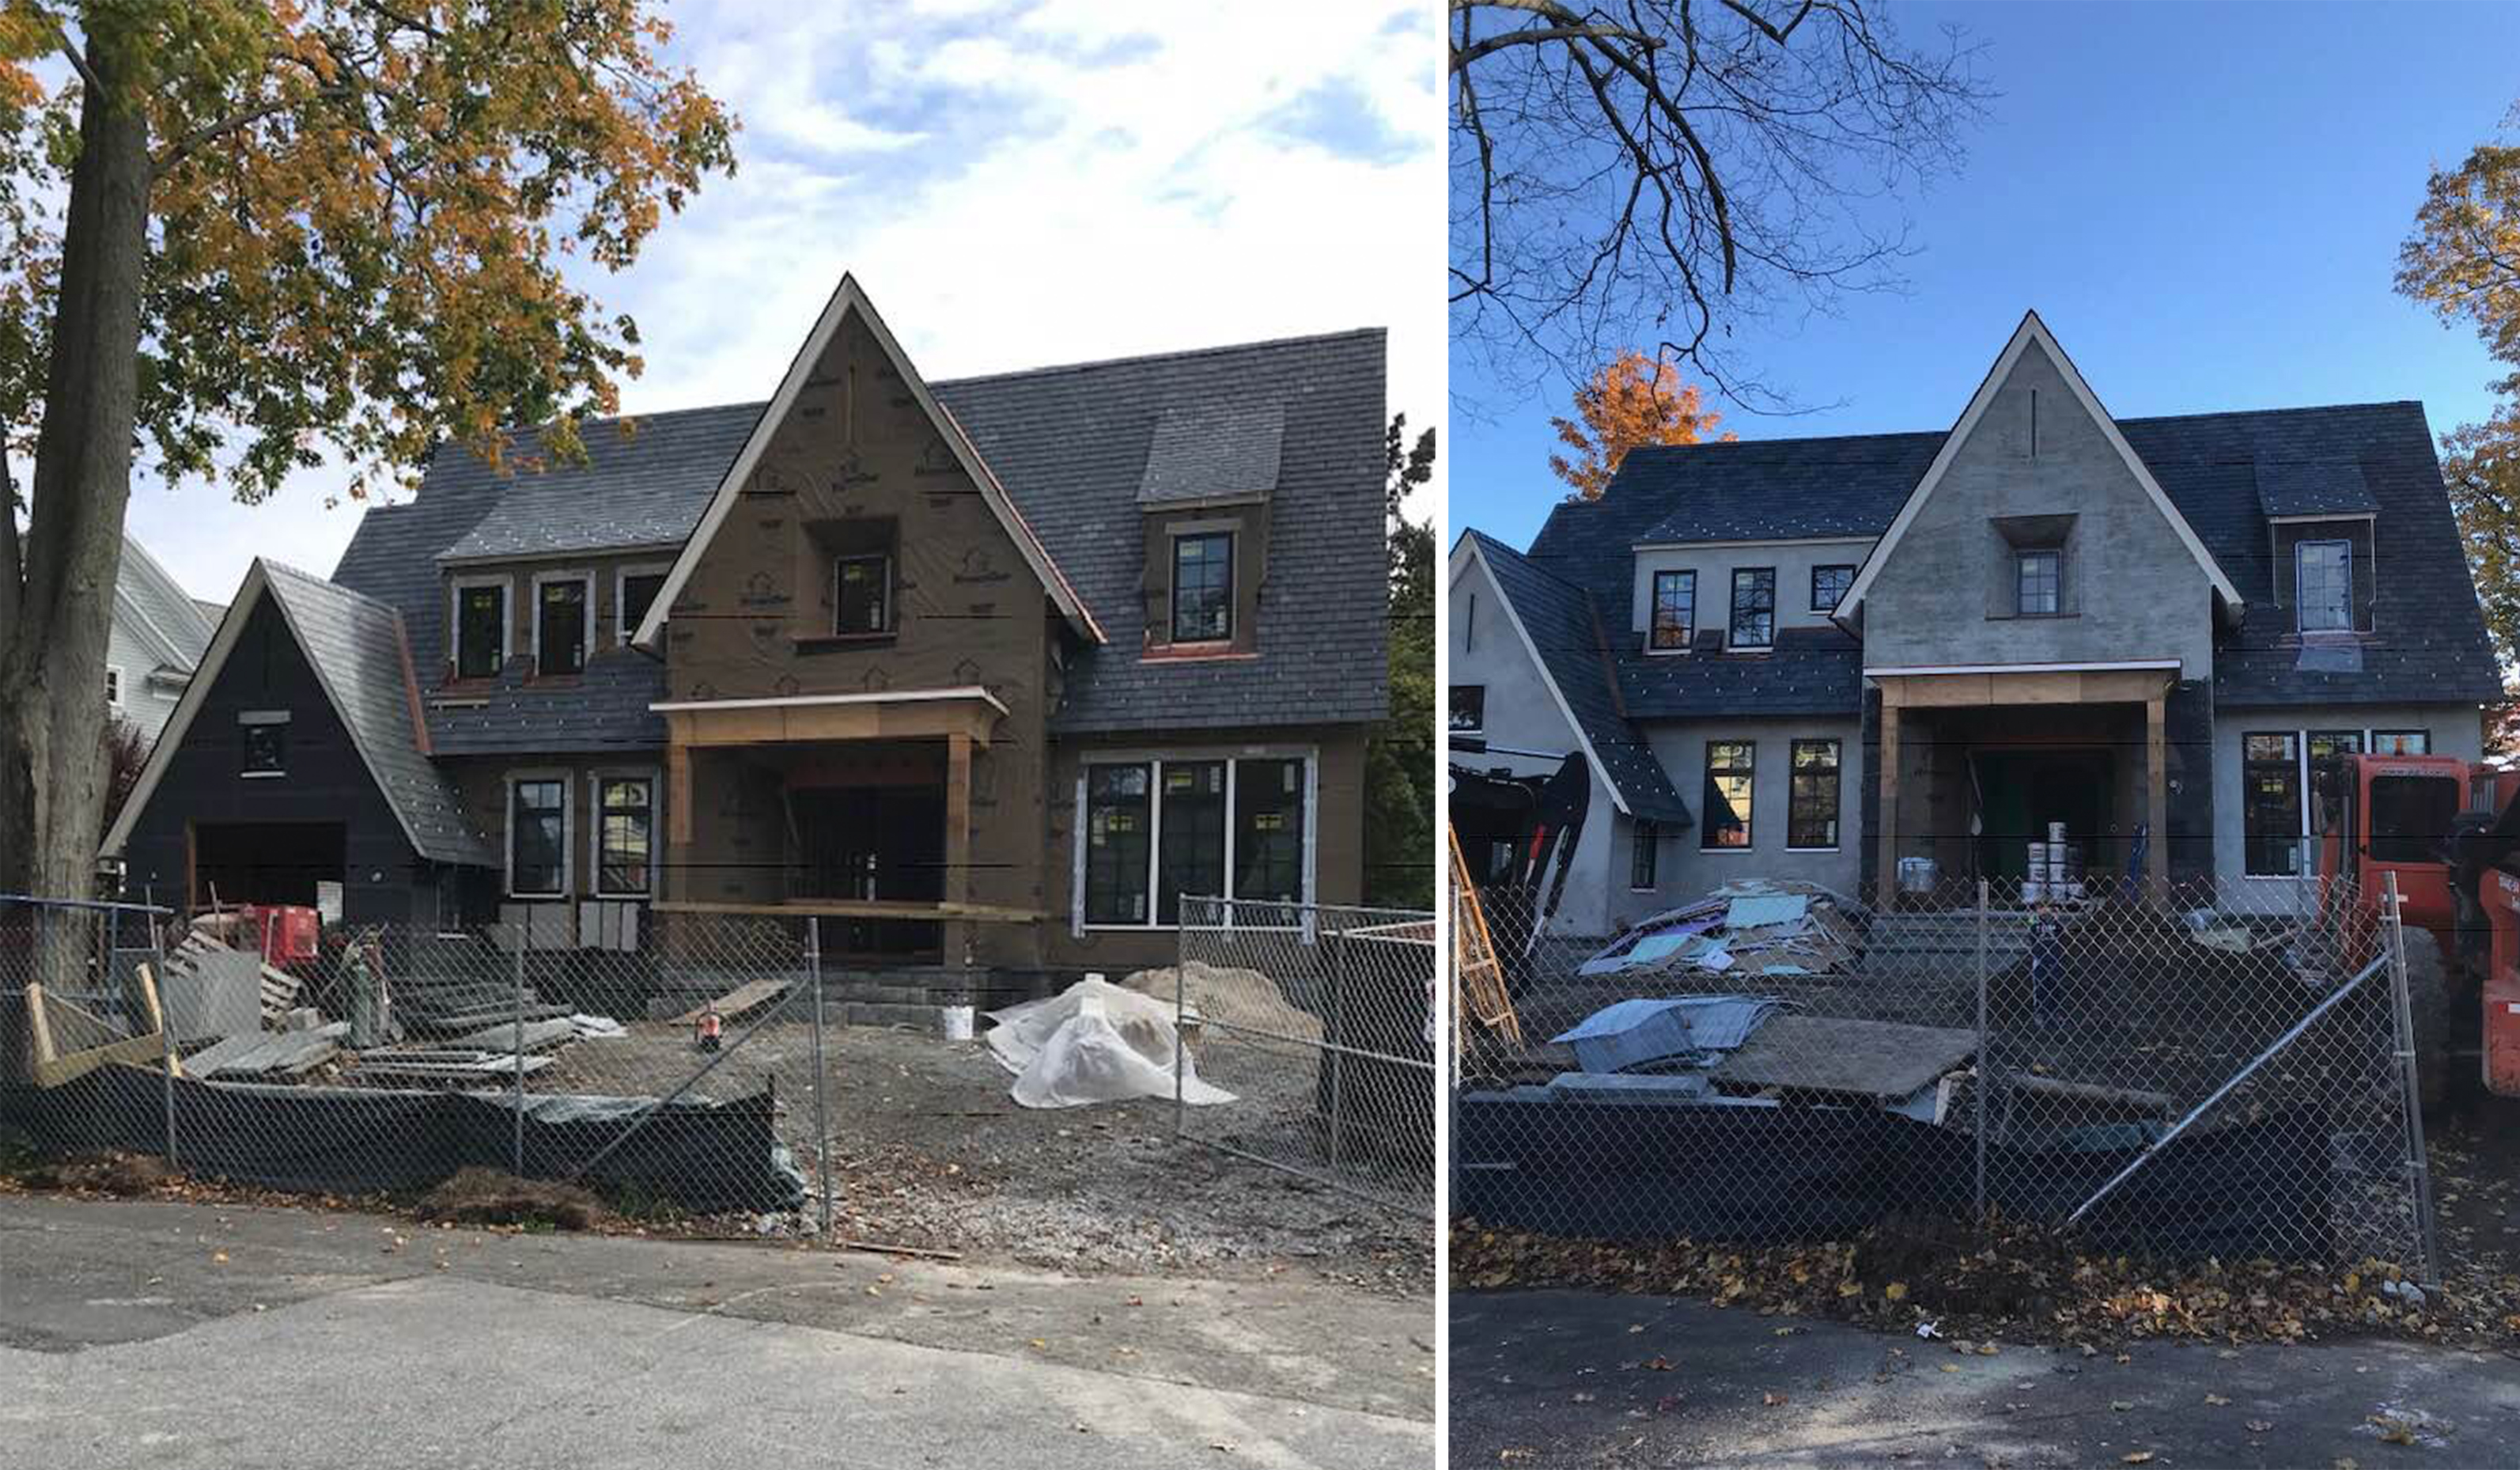 Larchmont stucco cottage construction progress on new custom home front elevation designed by luxury custom architect